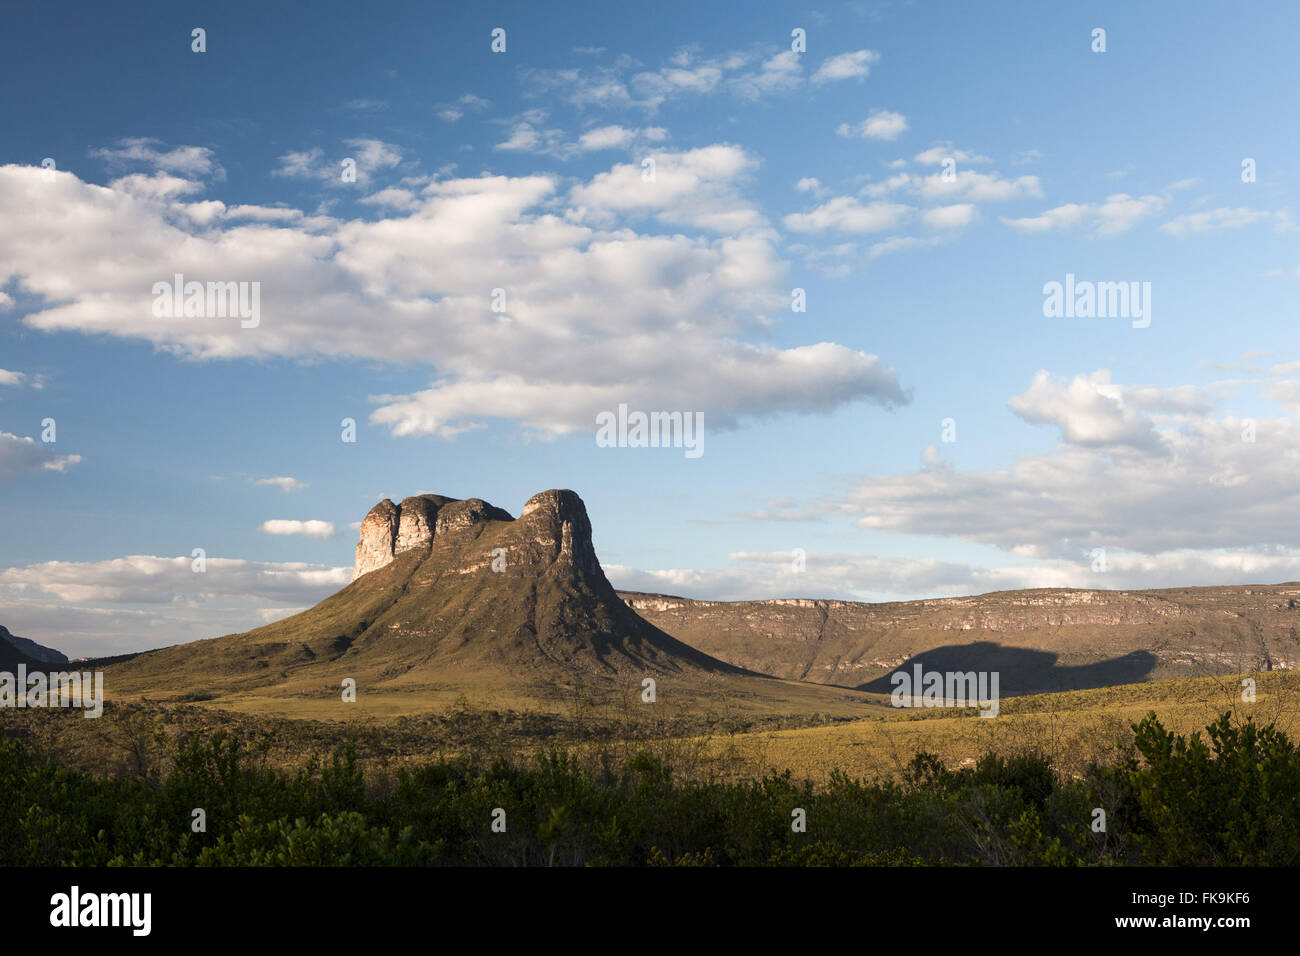 Mount Tabor better known as ergot - Location of Caete-Acu - Stock Image